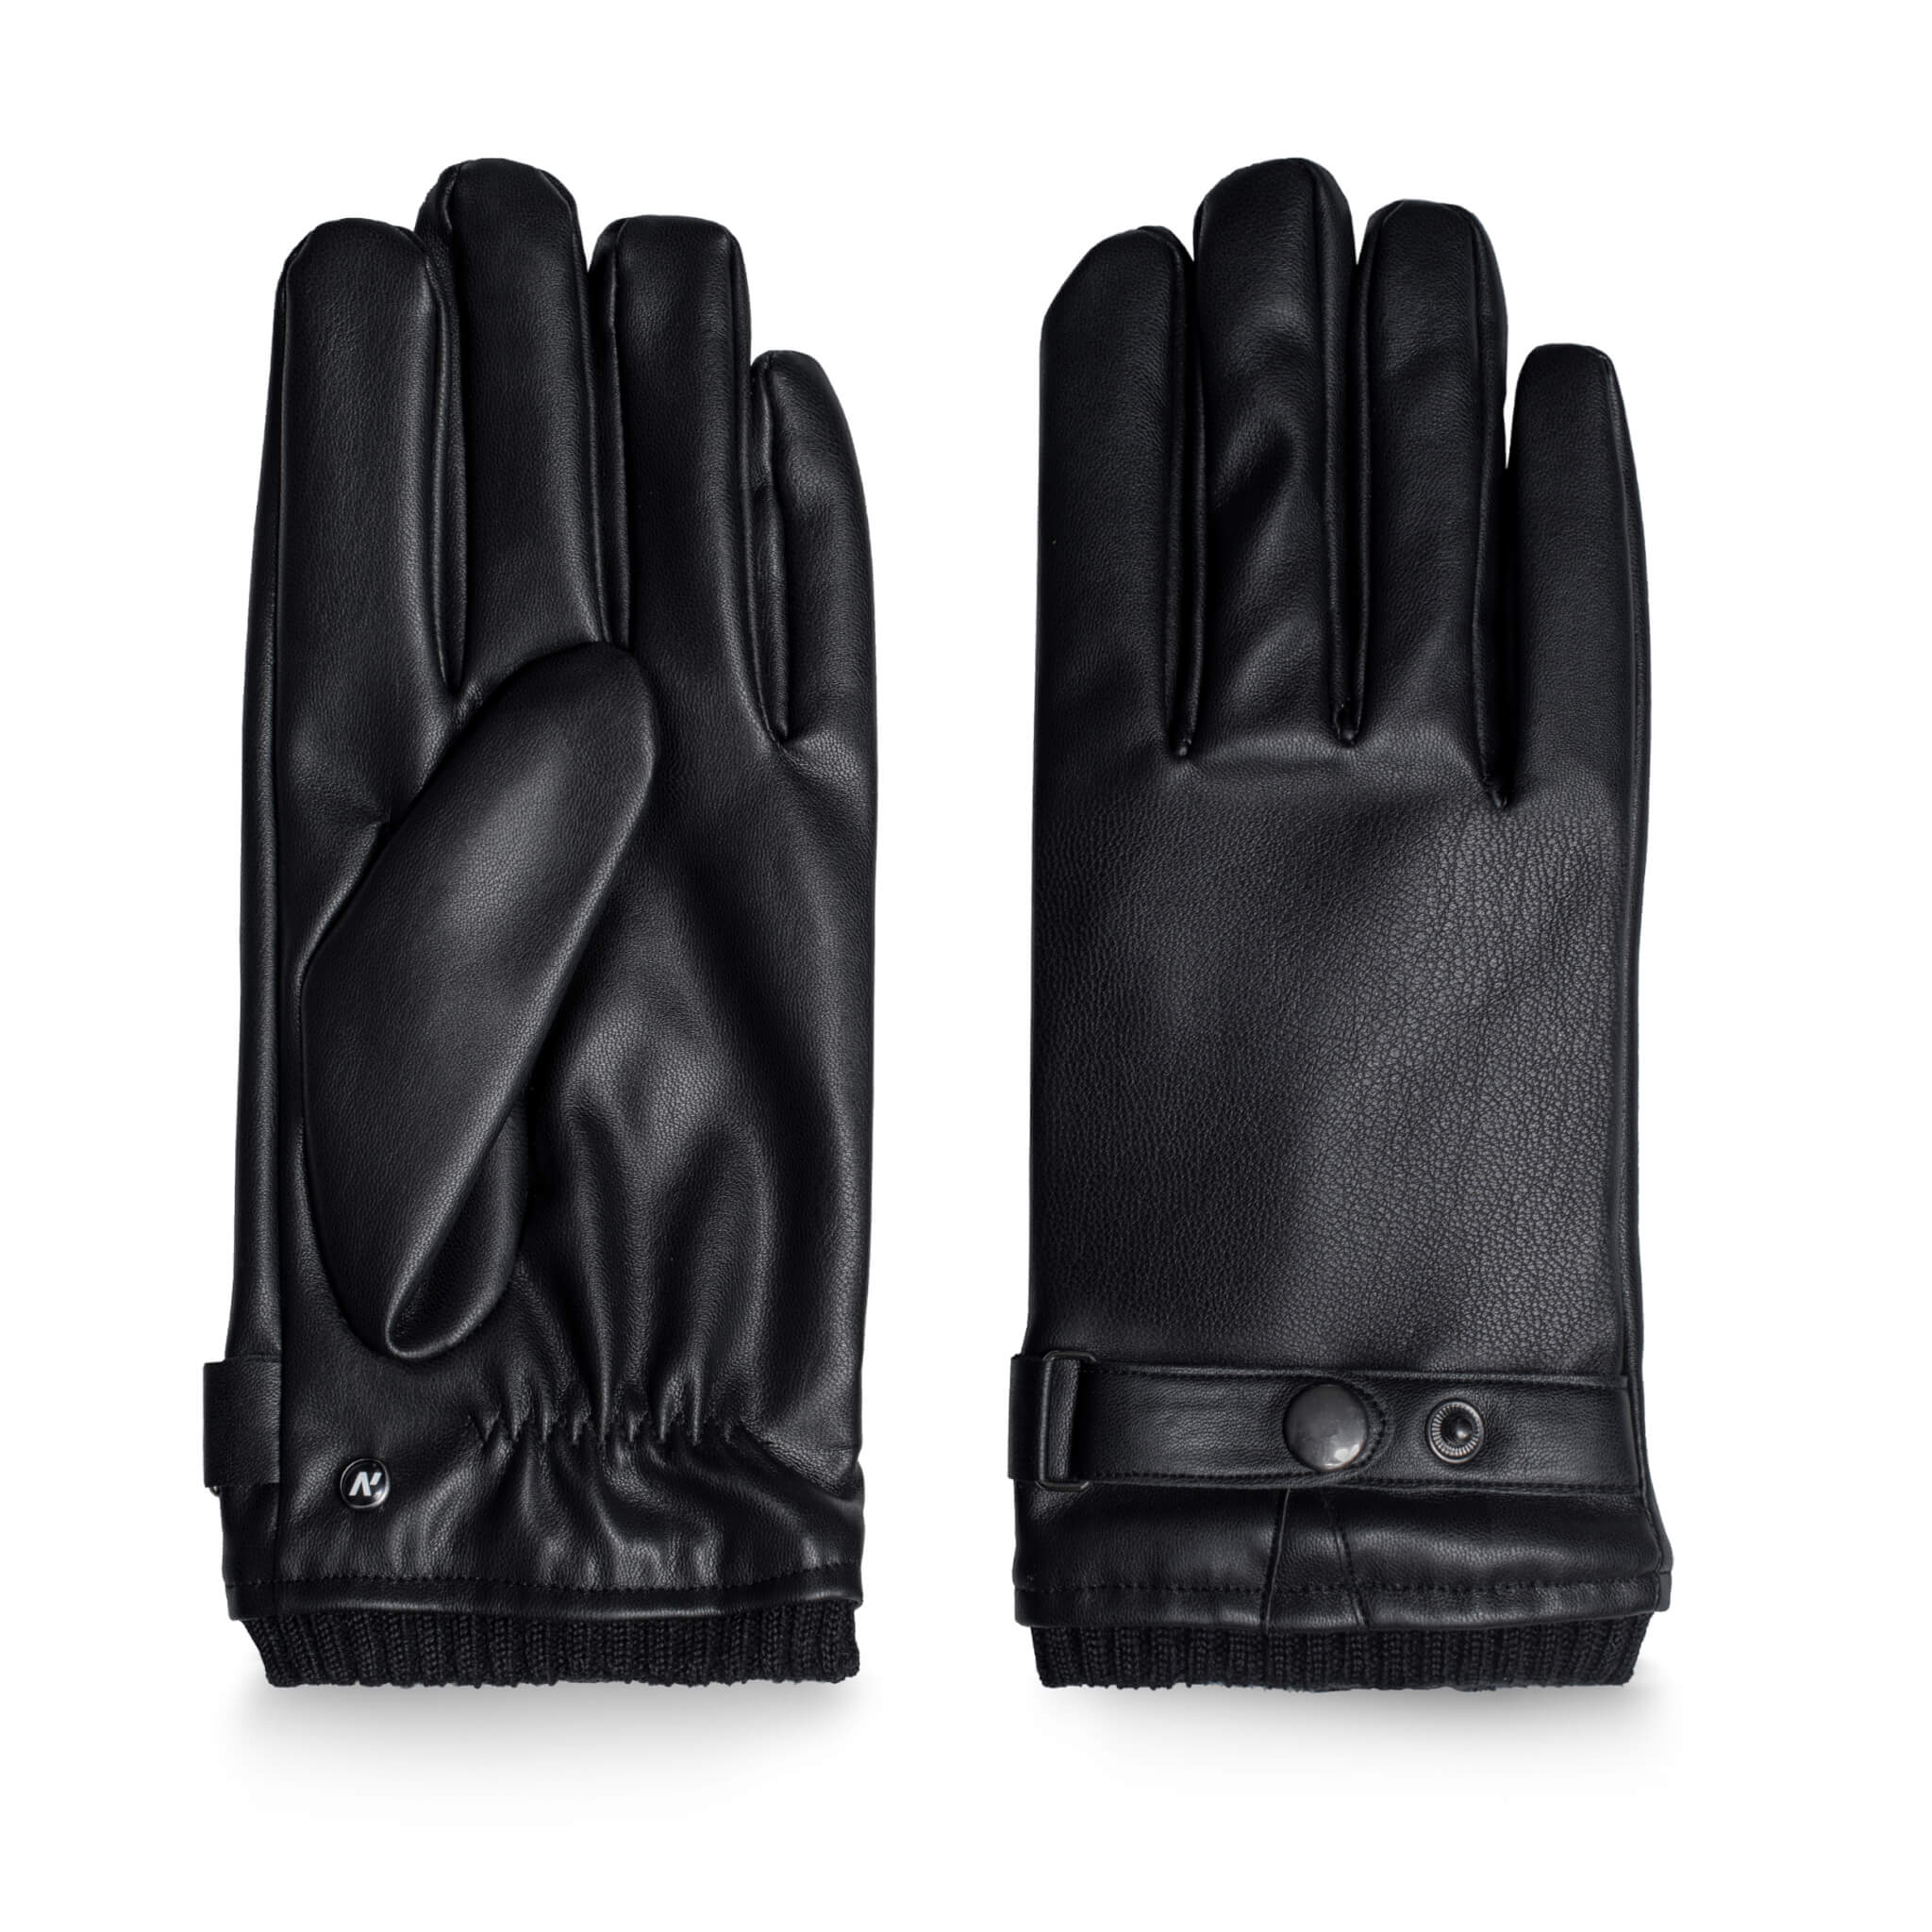 Winter gloves with lining made of eco leather with touchscreen technology